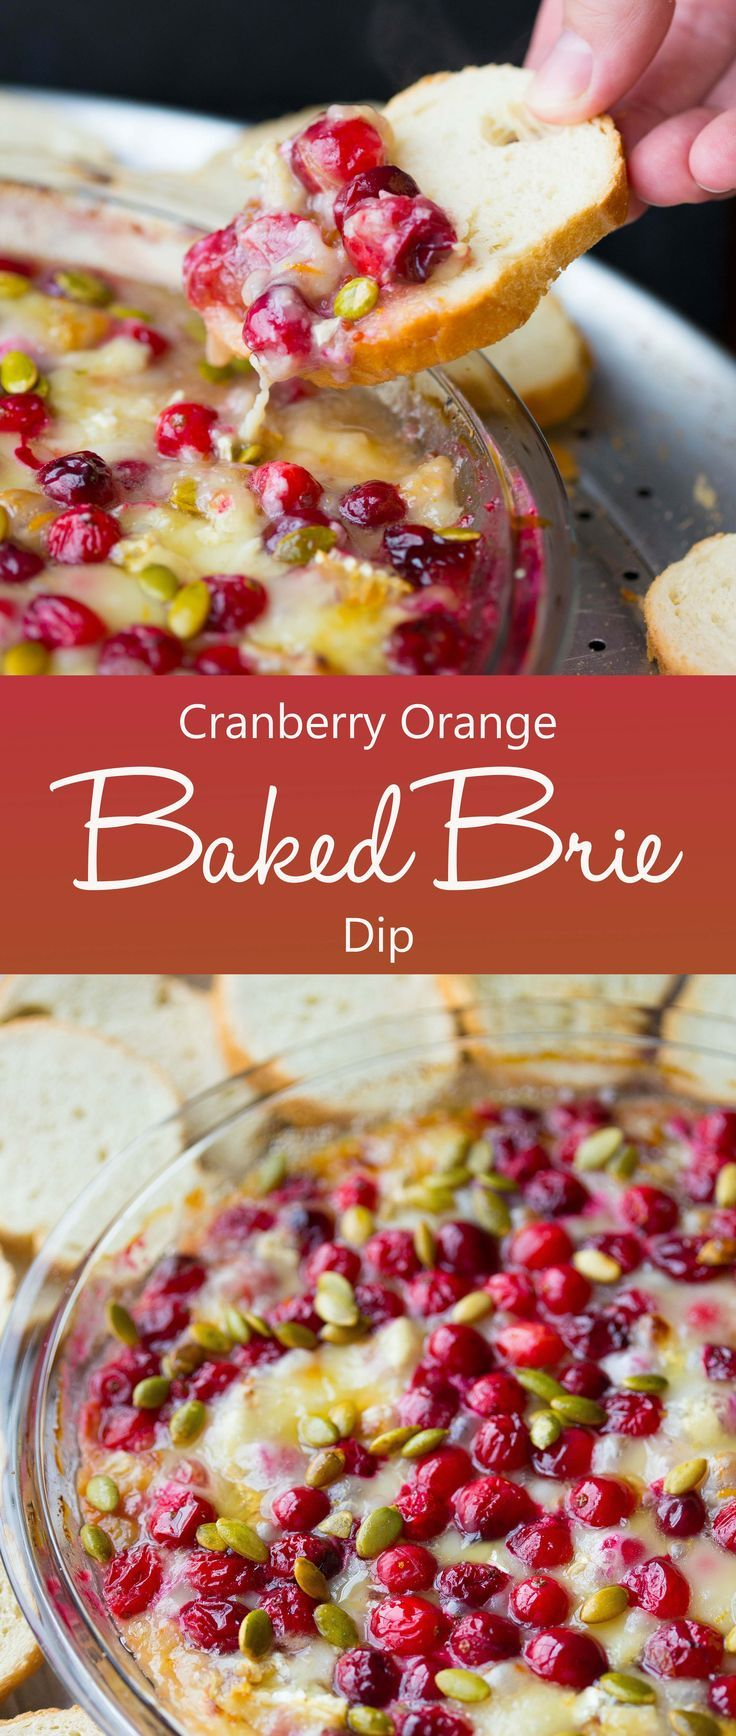 Cranberry Orange Baked Brie Dip Is A Super Easy, Fun, And